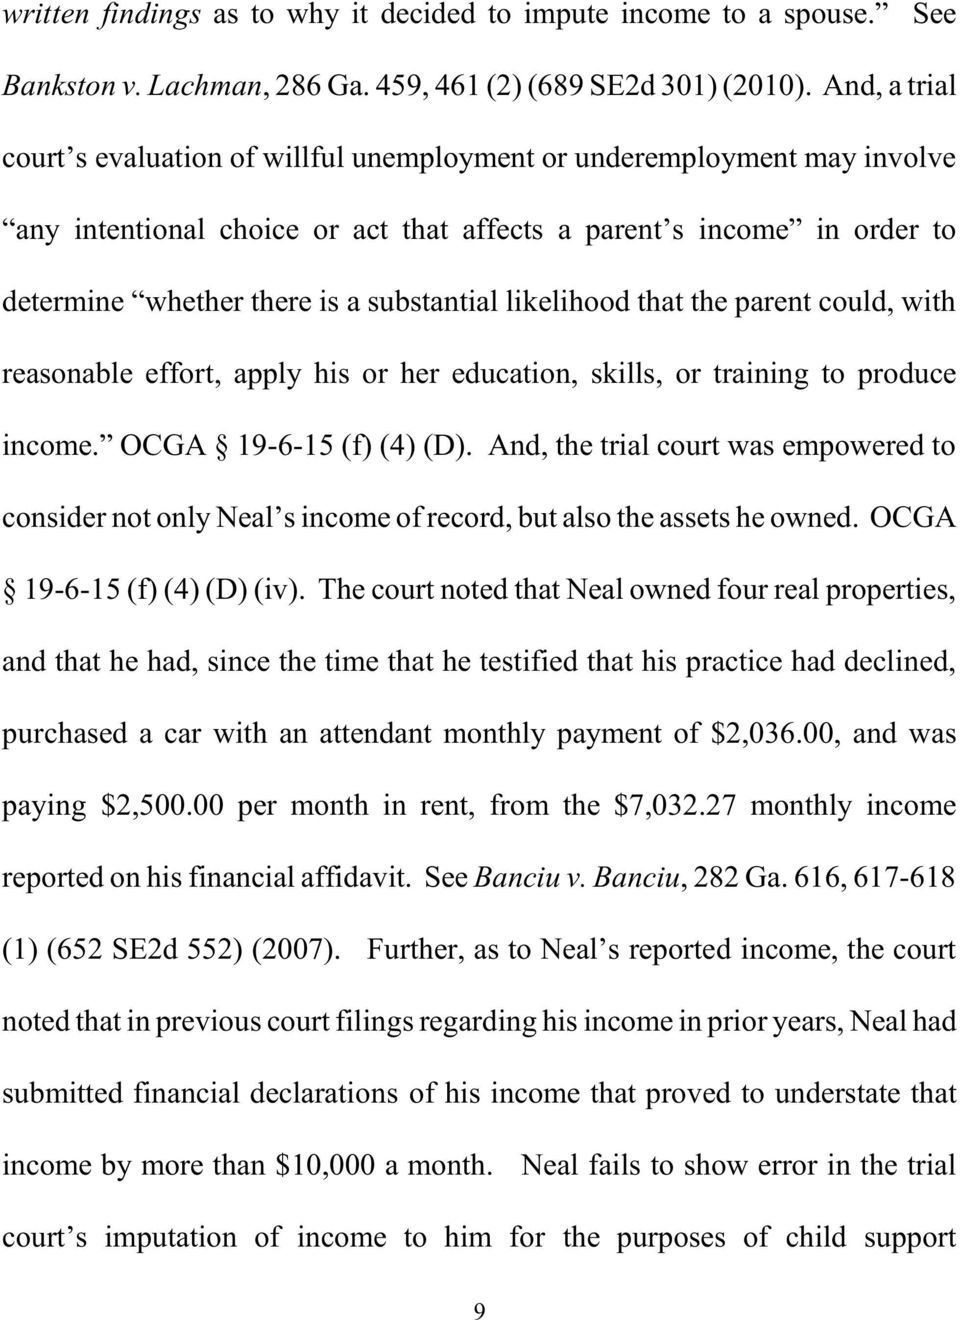 substantial likelihood that the parent could, with reasonable effort, apply his or her education, skills, or training to produce income. OCGA 19-6-15 (f) (4) (D).